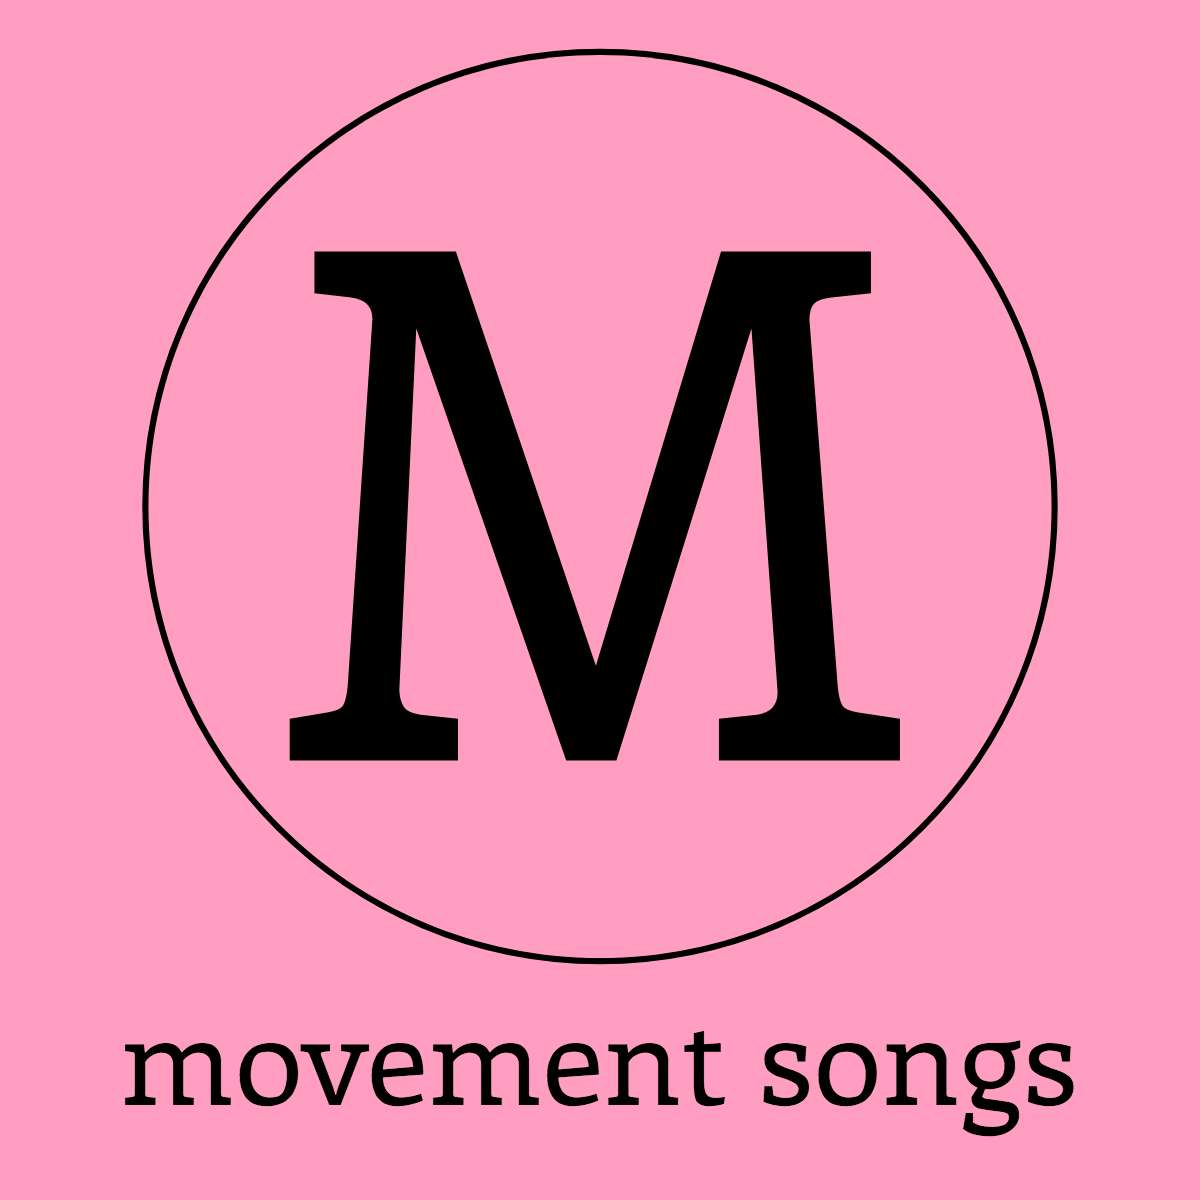 movement songs.jpg